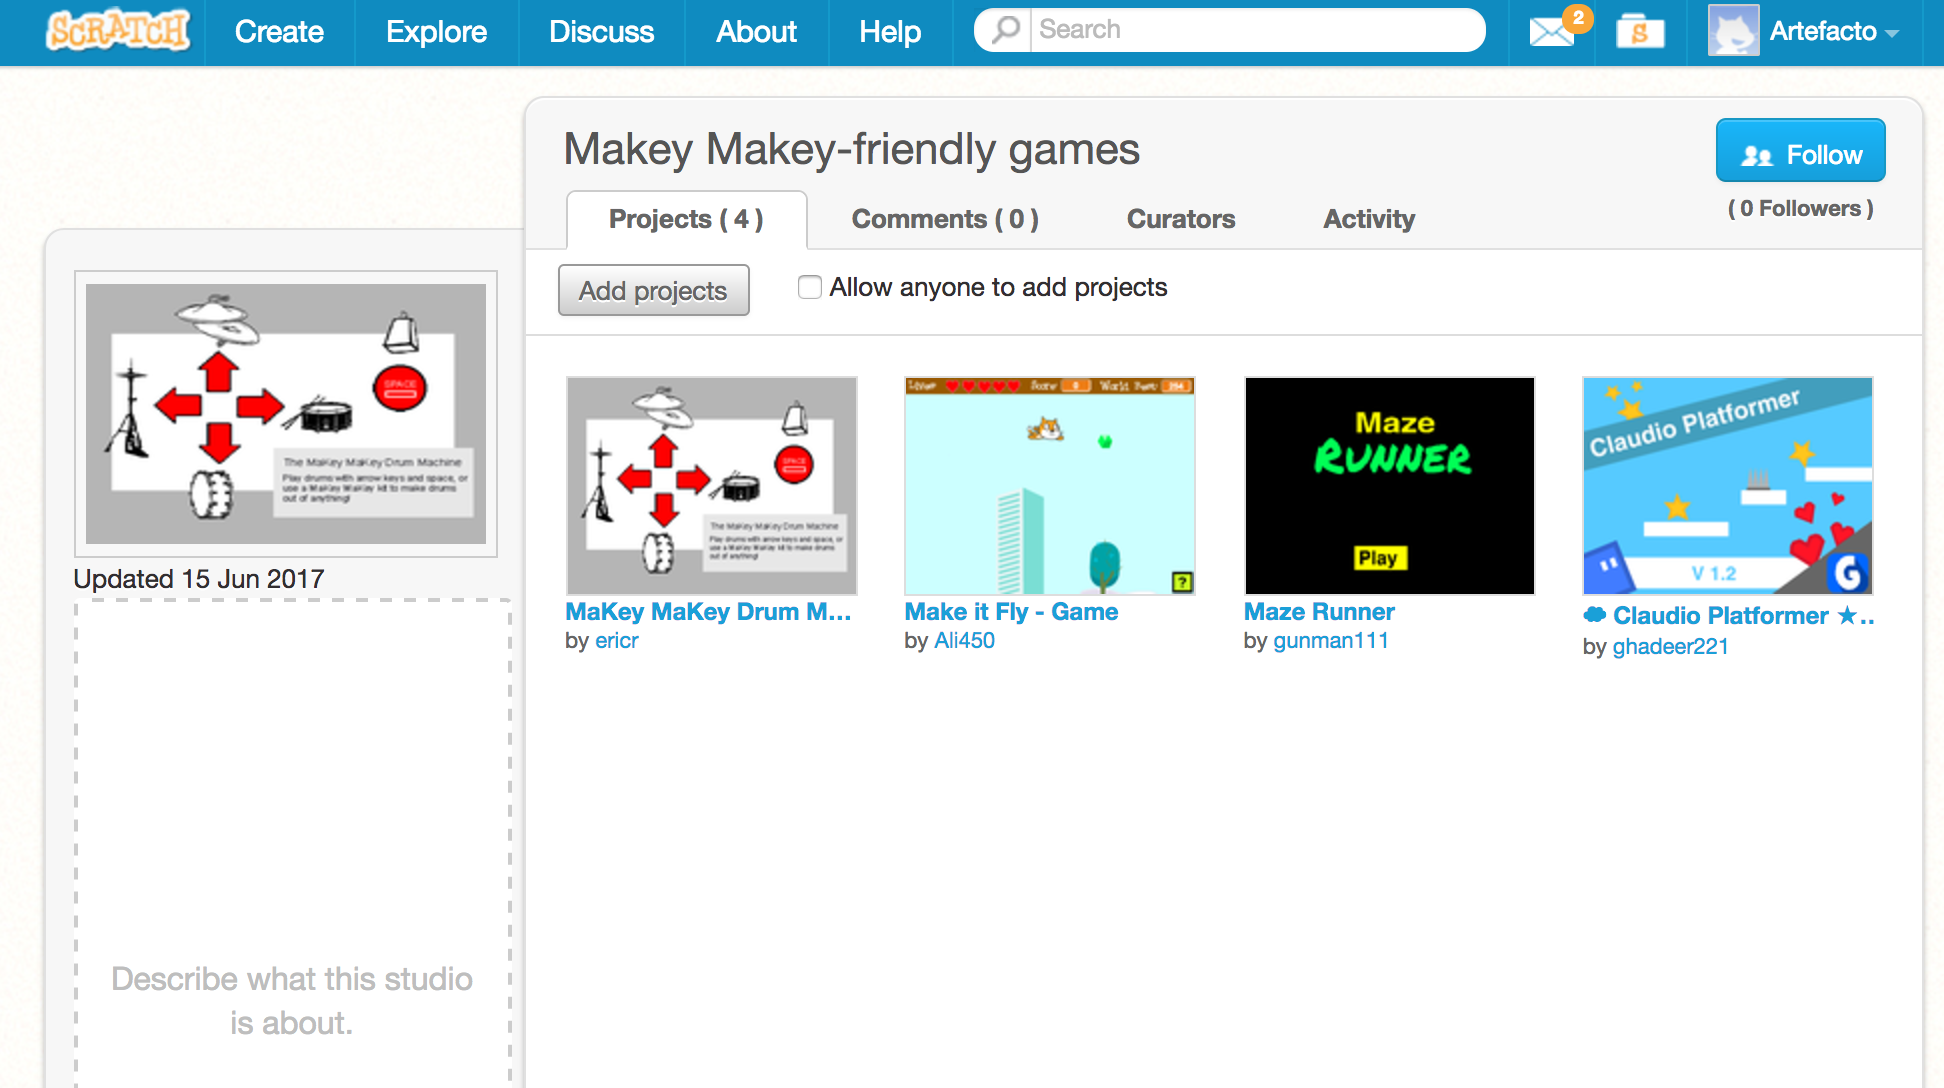 LibraryMakers - Make your own game controller with Makey Makey